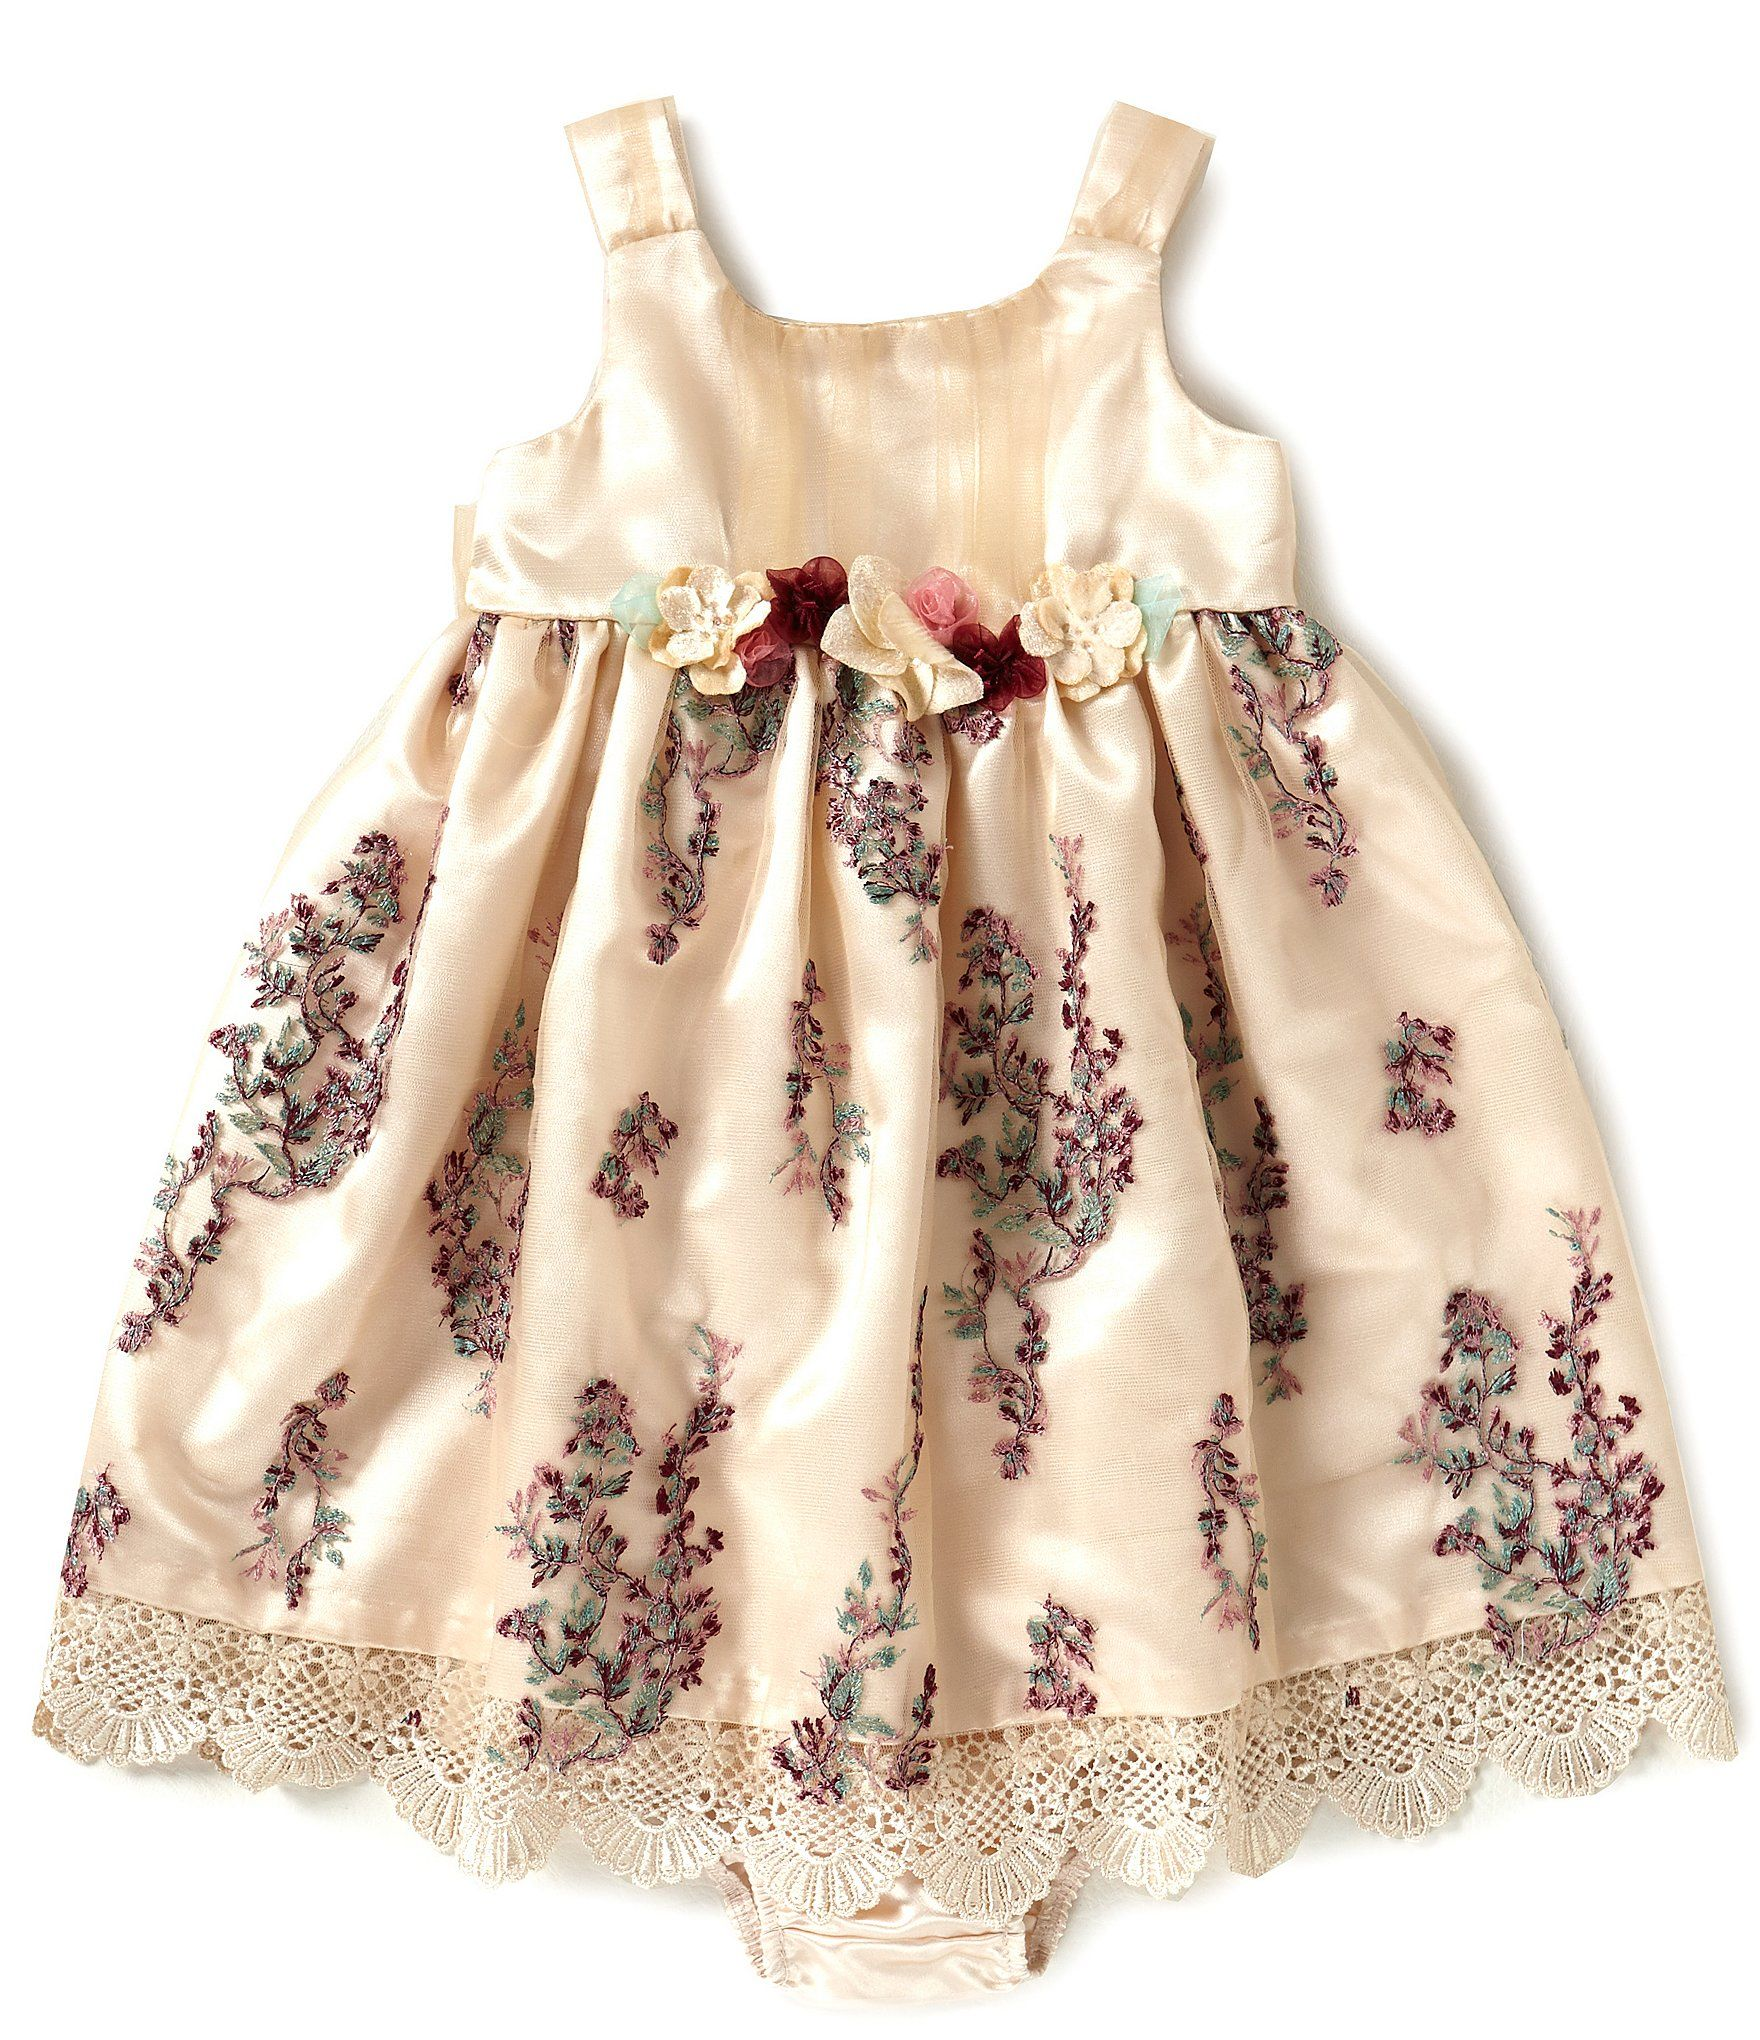 Bonnie Baby Baby Girls Newborn24 Months Embroidered Mesh ALine Dress